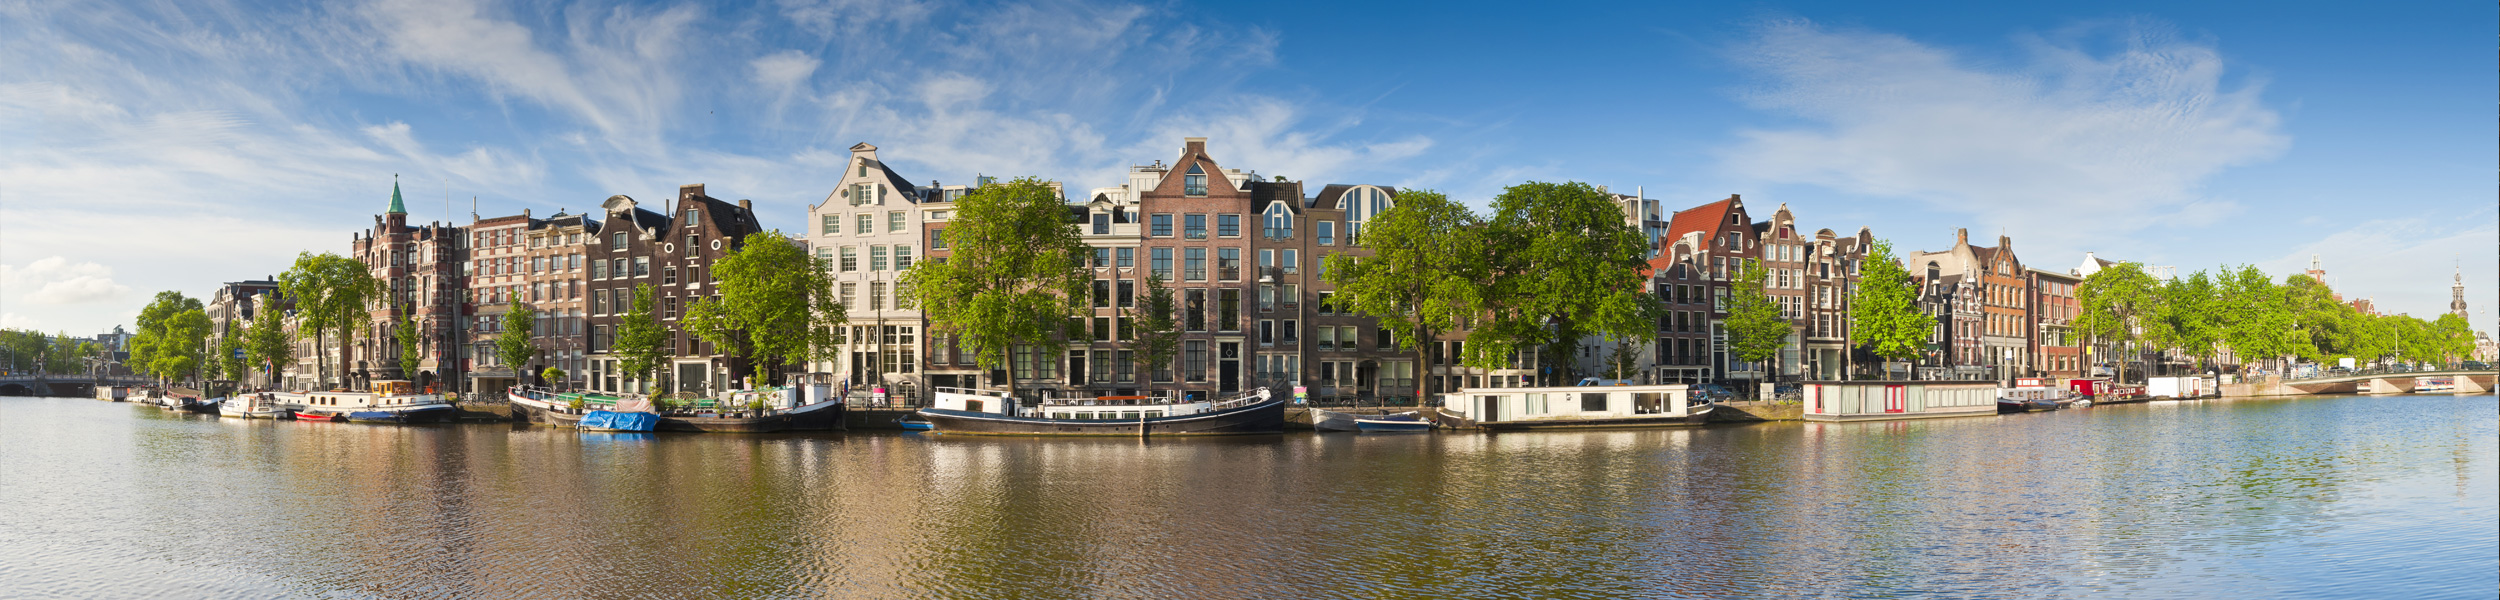 Development Engineer – Embedded Systems Amsterdam, The Netherlands